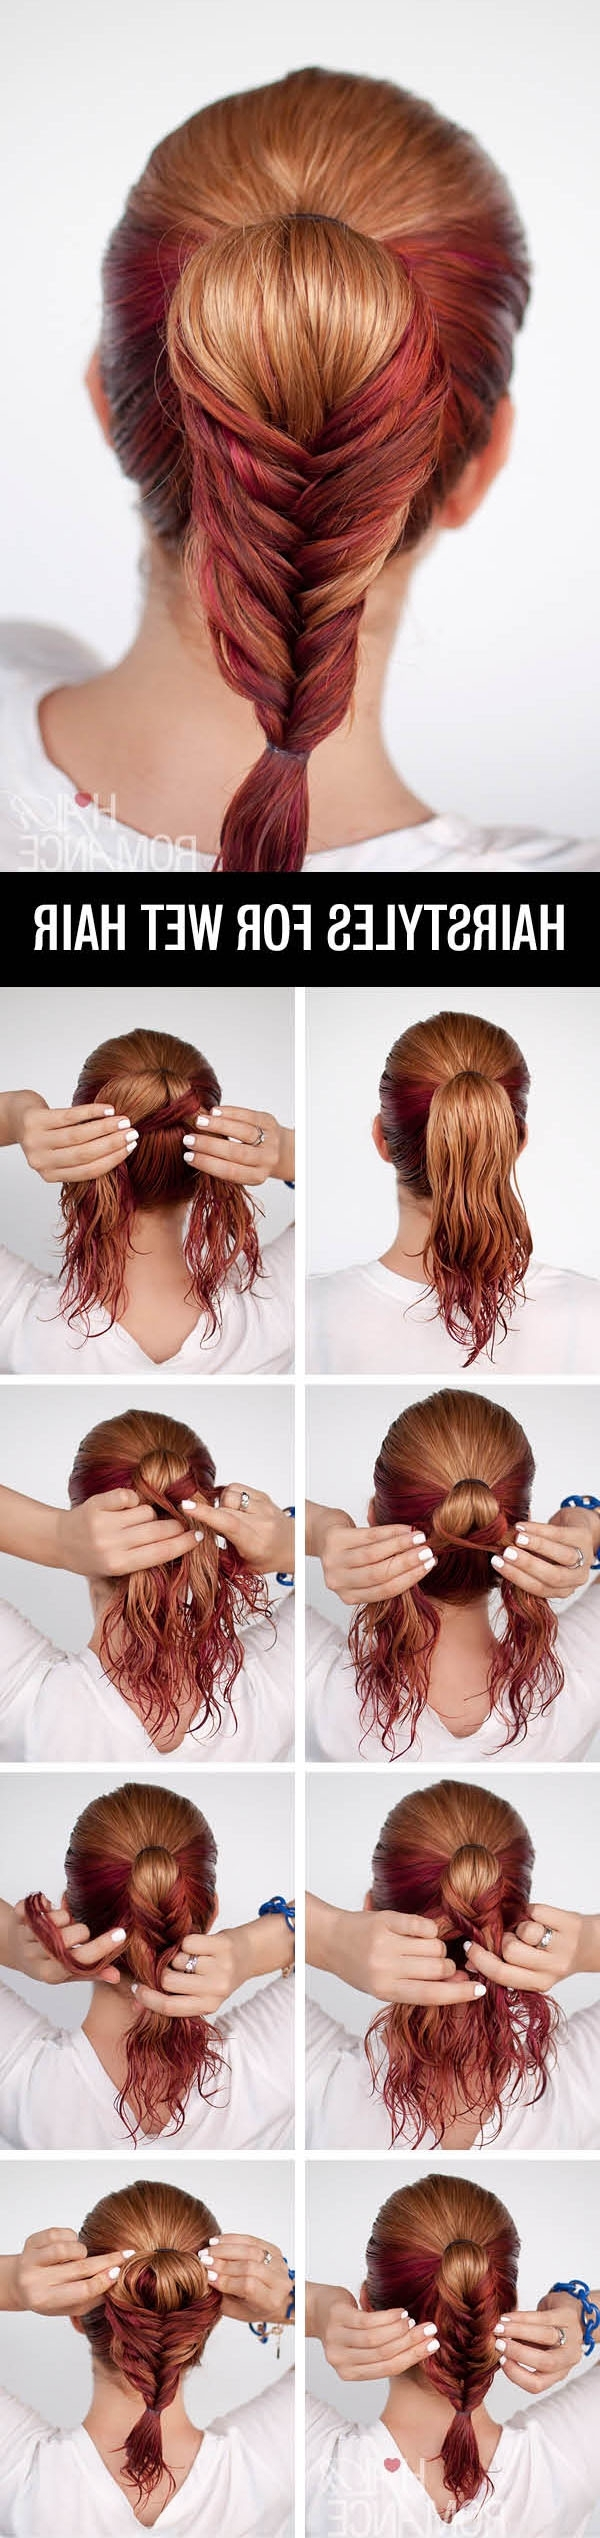 Get Ready Fast With 7 Easy Hairstyle Tutorials For Wet Hair – Hair Within Wet Hair Updo Hairstyles (Gallery 15 of 15)